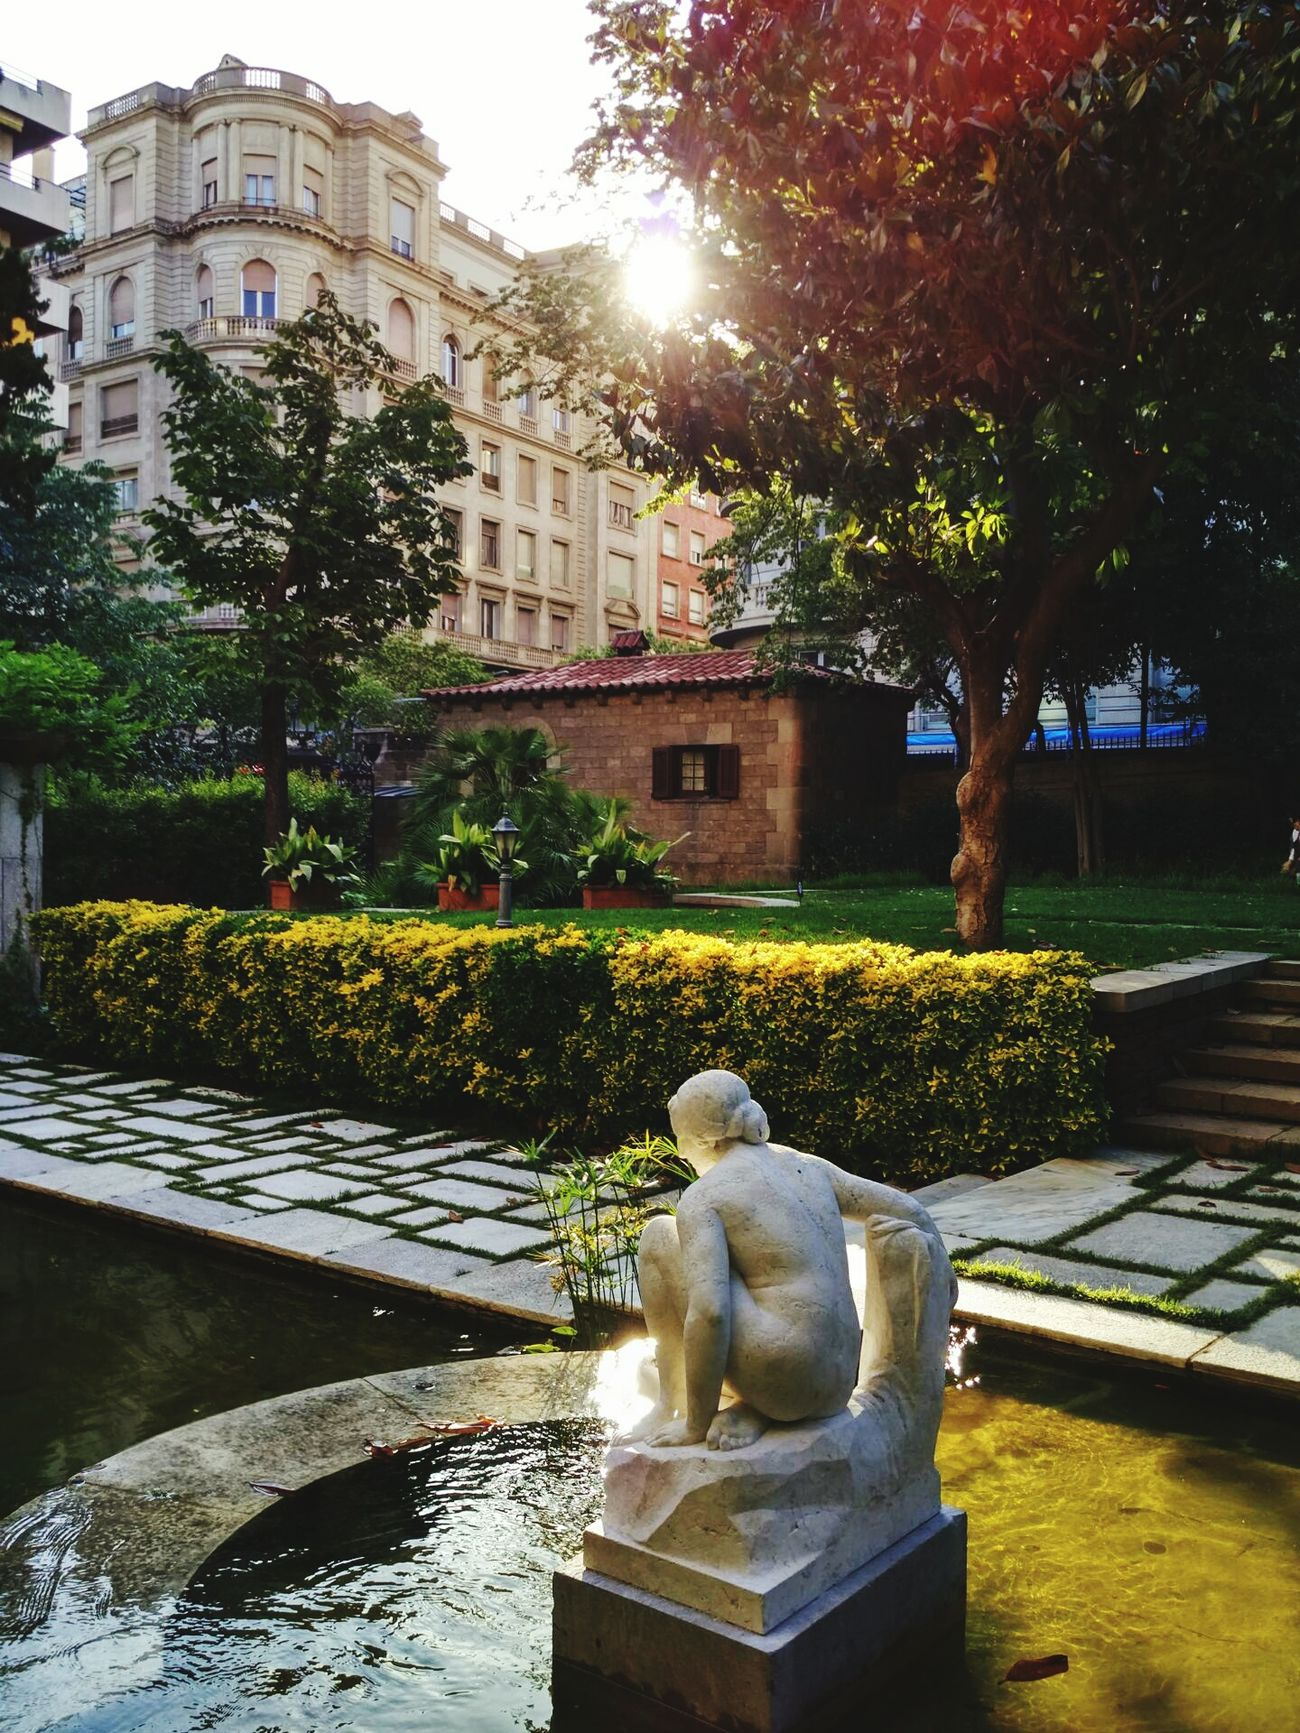 Urban Oasis || Walking Around Barcelona Teengrapher Eyeemteen Garden Photography Sculpture Oasis Heaven Urban Oasis Discover Your City Enjoying The Sun City City Life Urban Landscape Summer2016 SPAIN Catalunya Catalonia Barcelonainspira Barcelona Secreta Barcelona Streetphotography Park Secret Garden Relaxing Urbanexploration